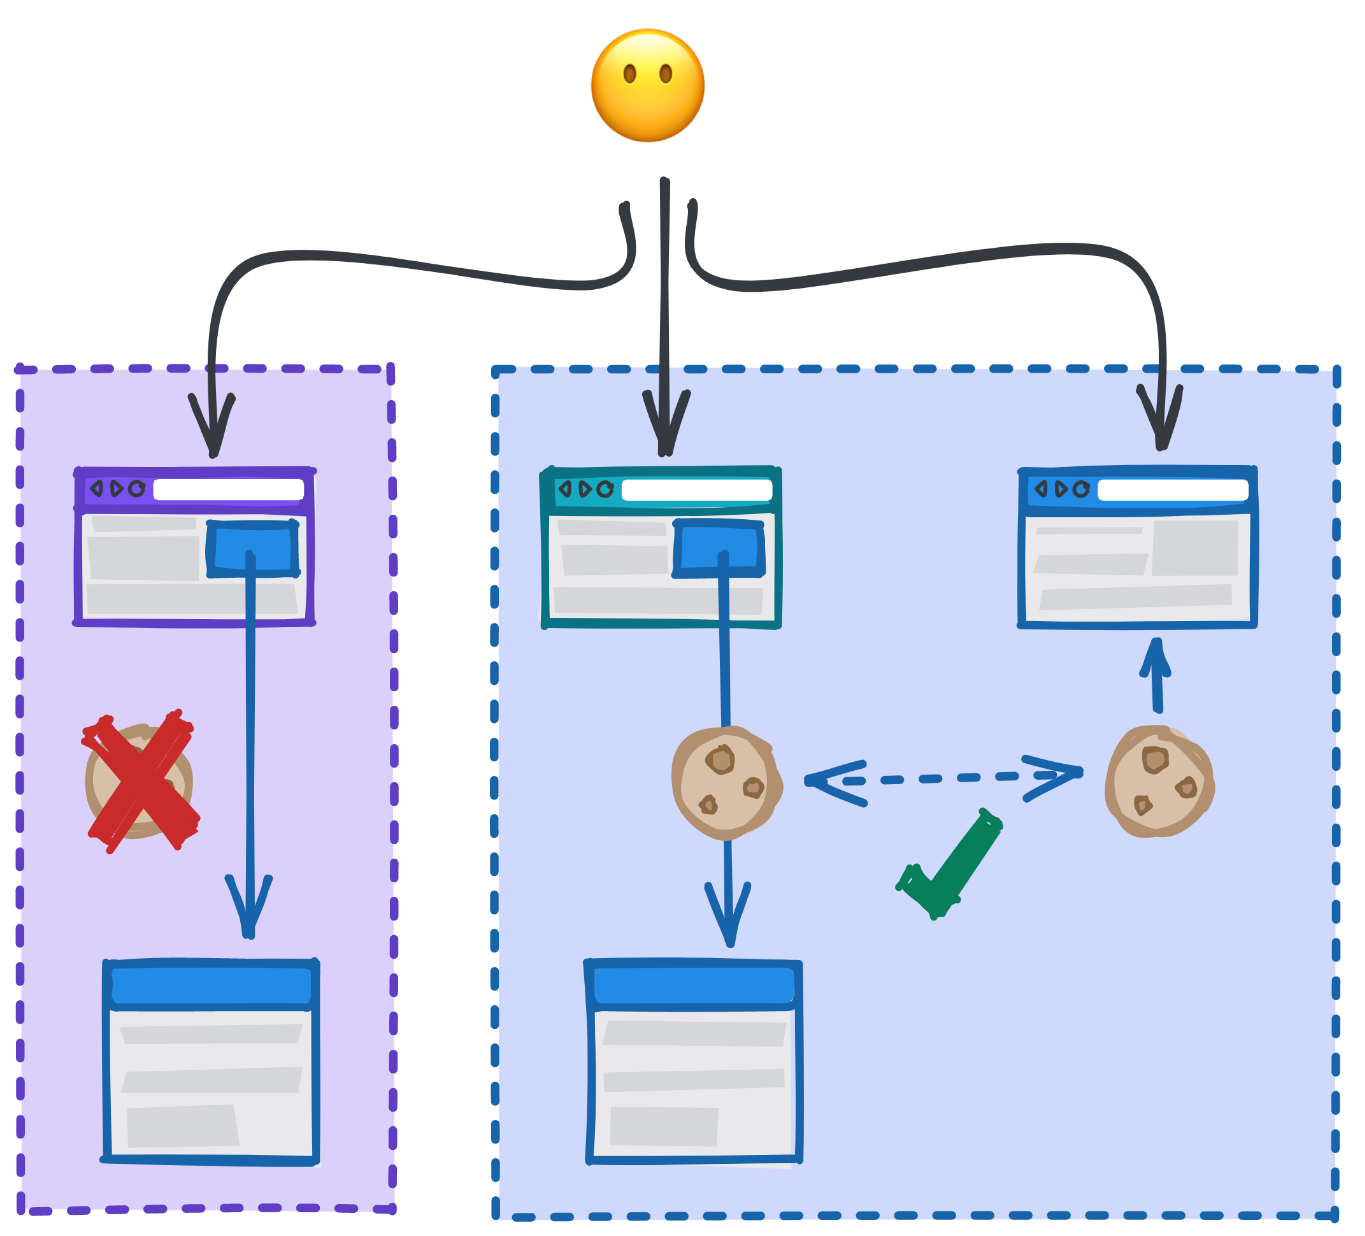 Diagram showing how a cookie may still be included in a cross-site context if the sites are part of the same First-Party Set, but that it would be rejected for cross-site contexts outside of the set.